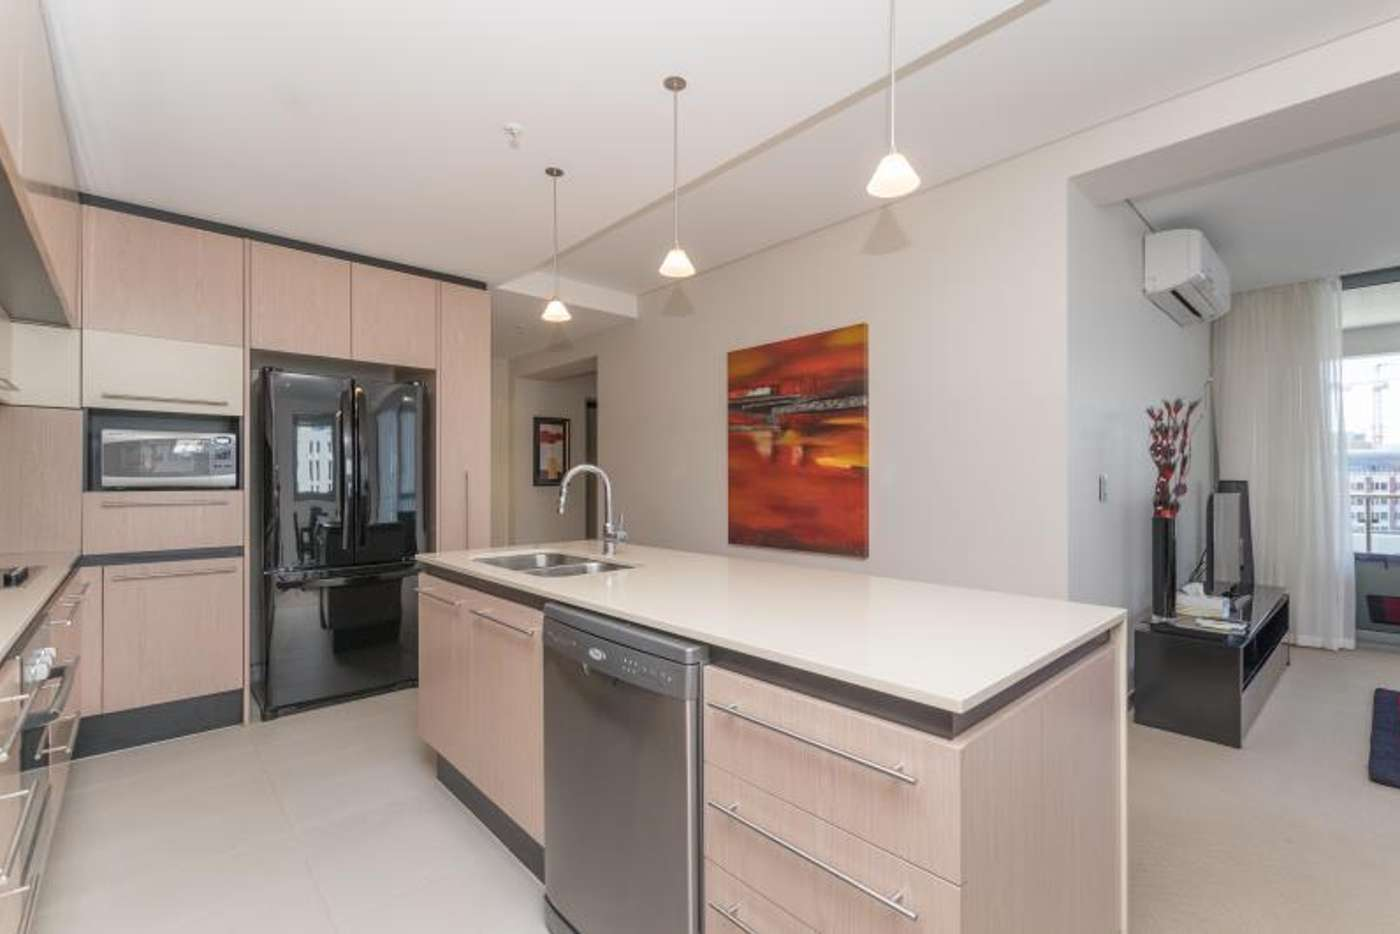 Main view of Homely apartment listing, 26/155 Adelaide Tce, East Perth WA 6004